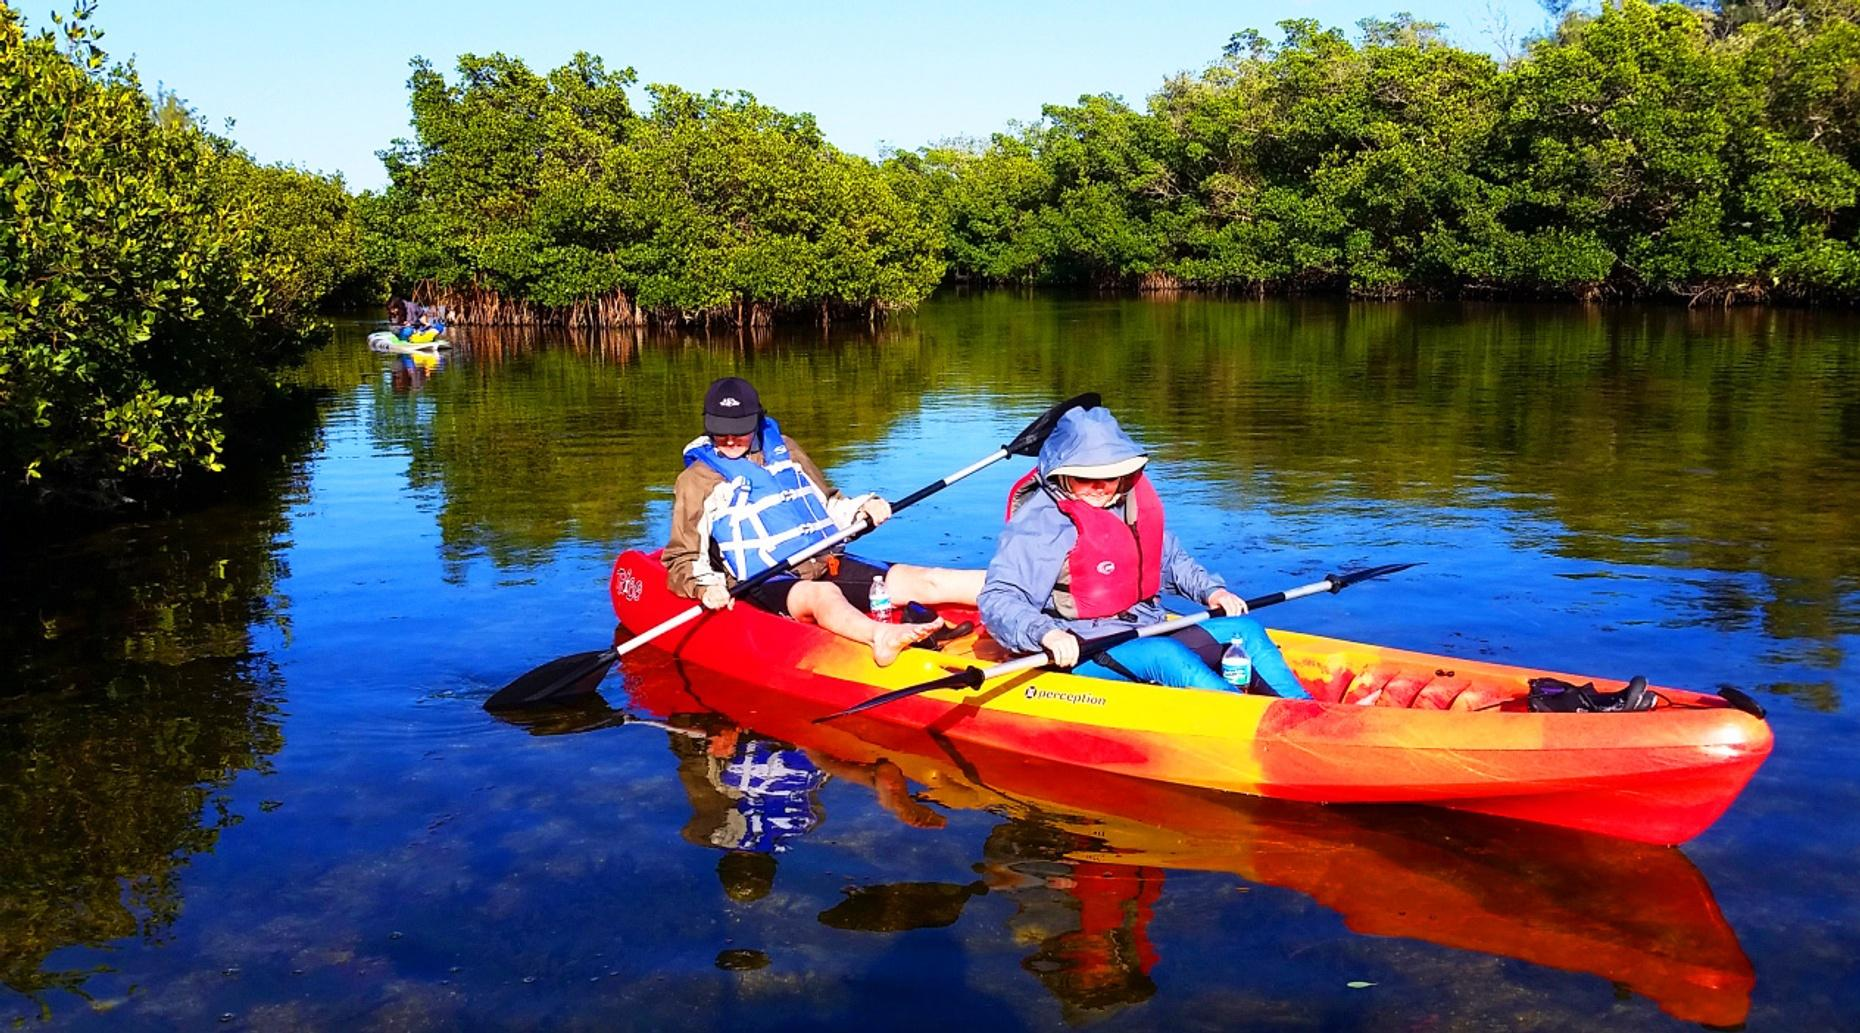 Half-Day Tandem Kayak Rental in Crystal River